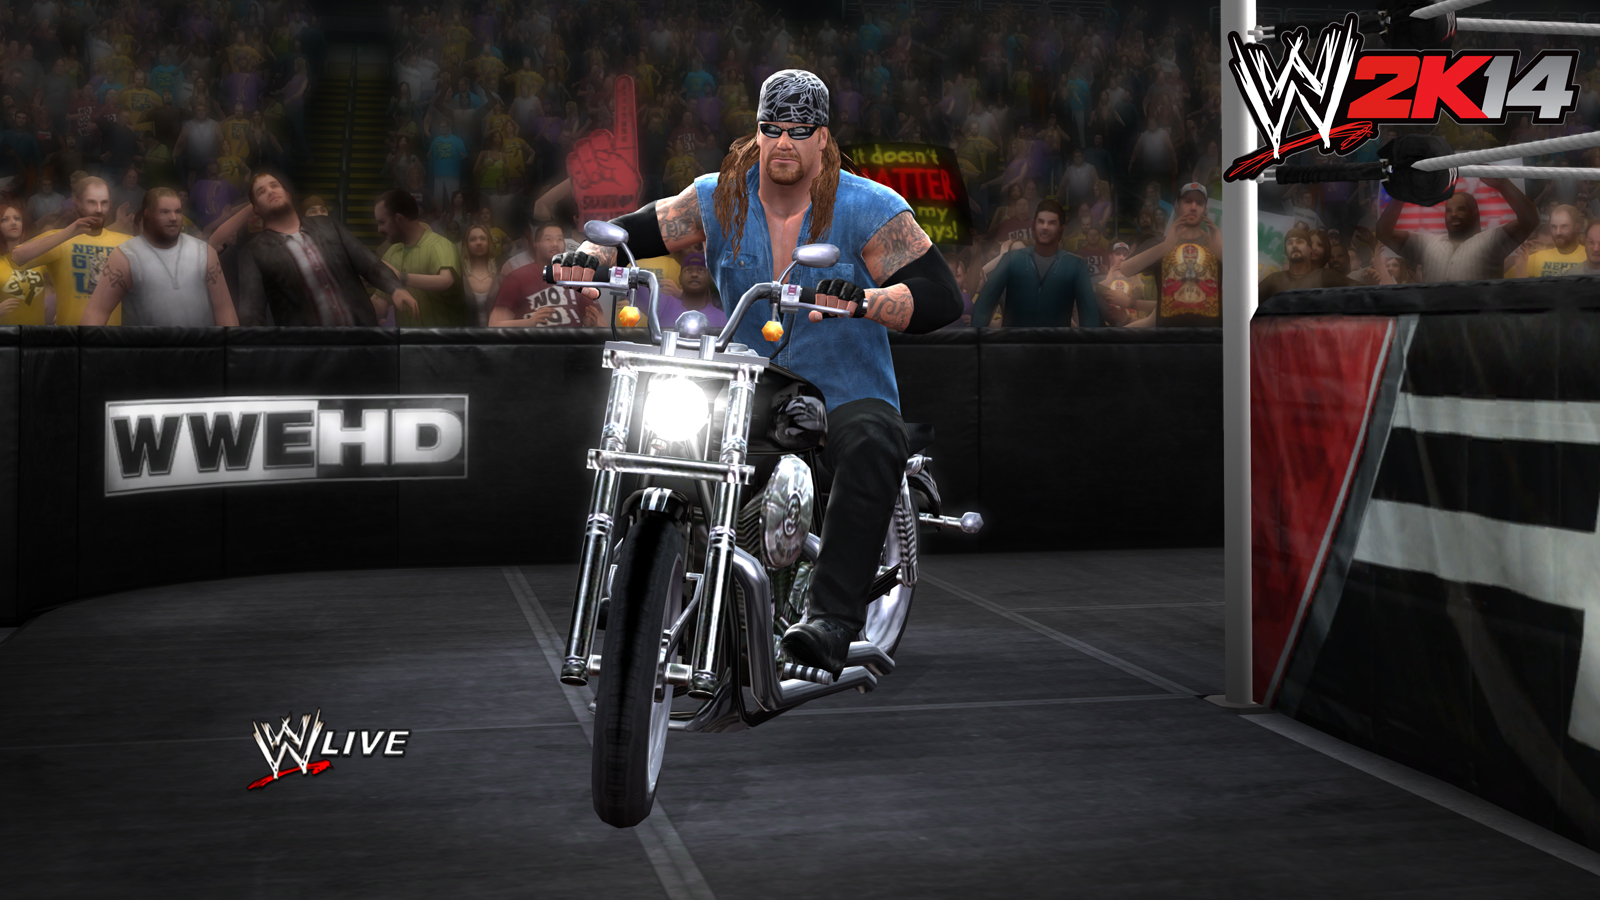 American Bad Ass Undertaker Images! | CAWs.ws News